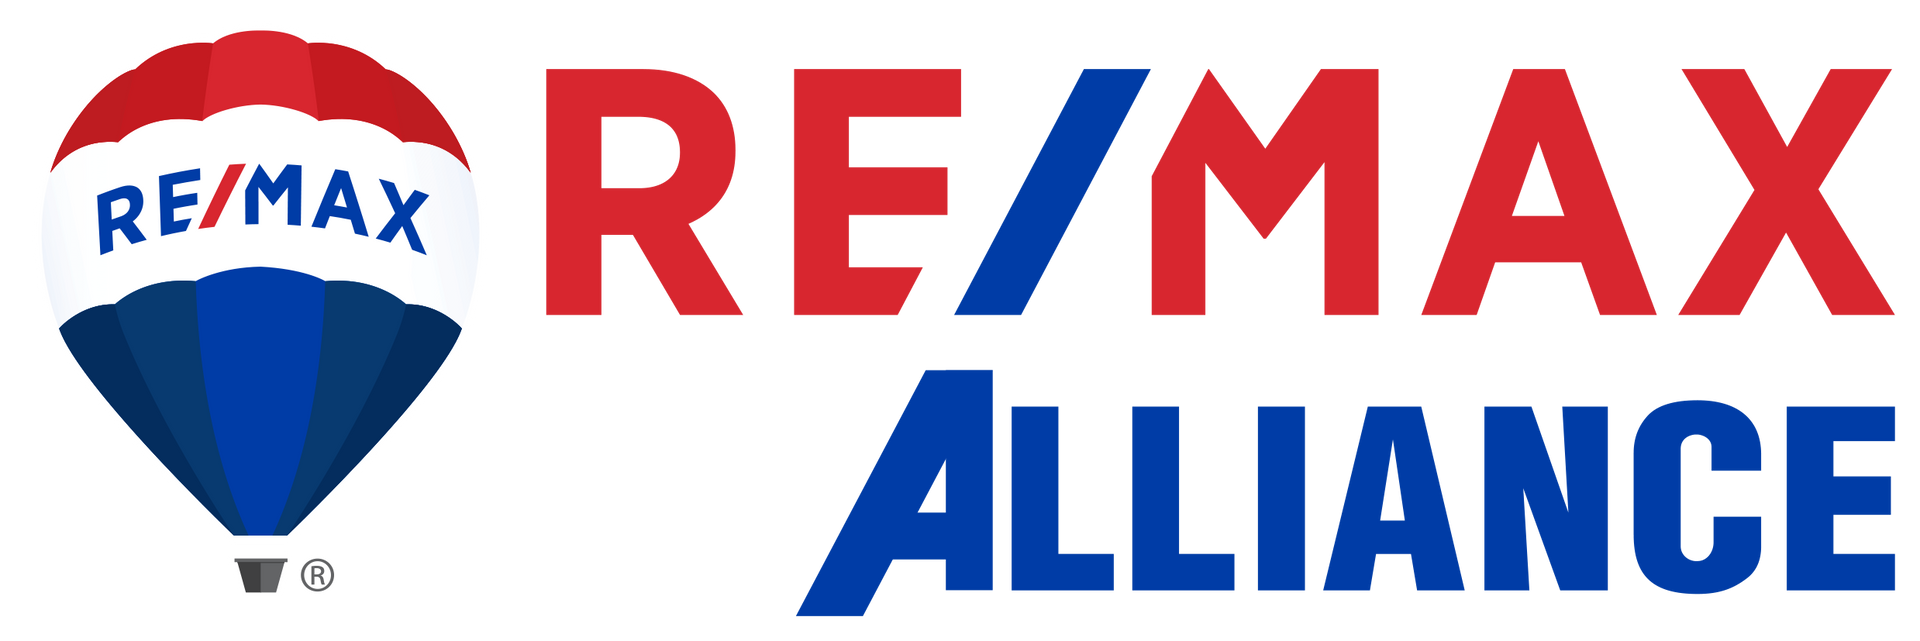 remax-alliance-with-balloon (1).png